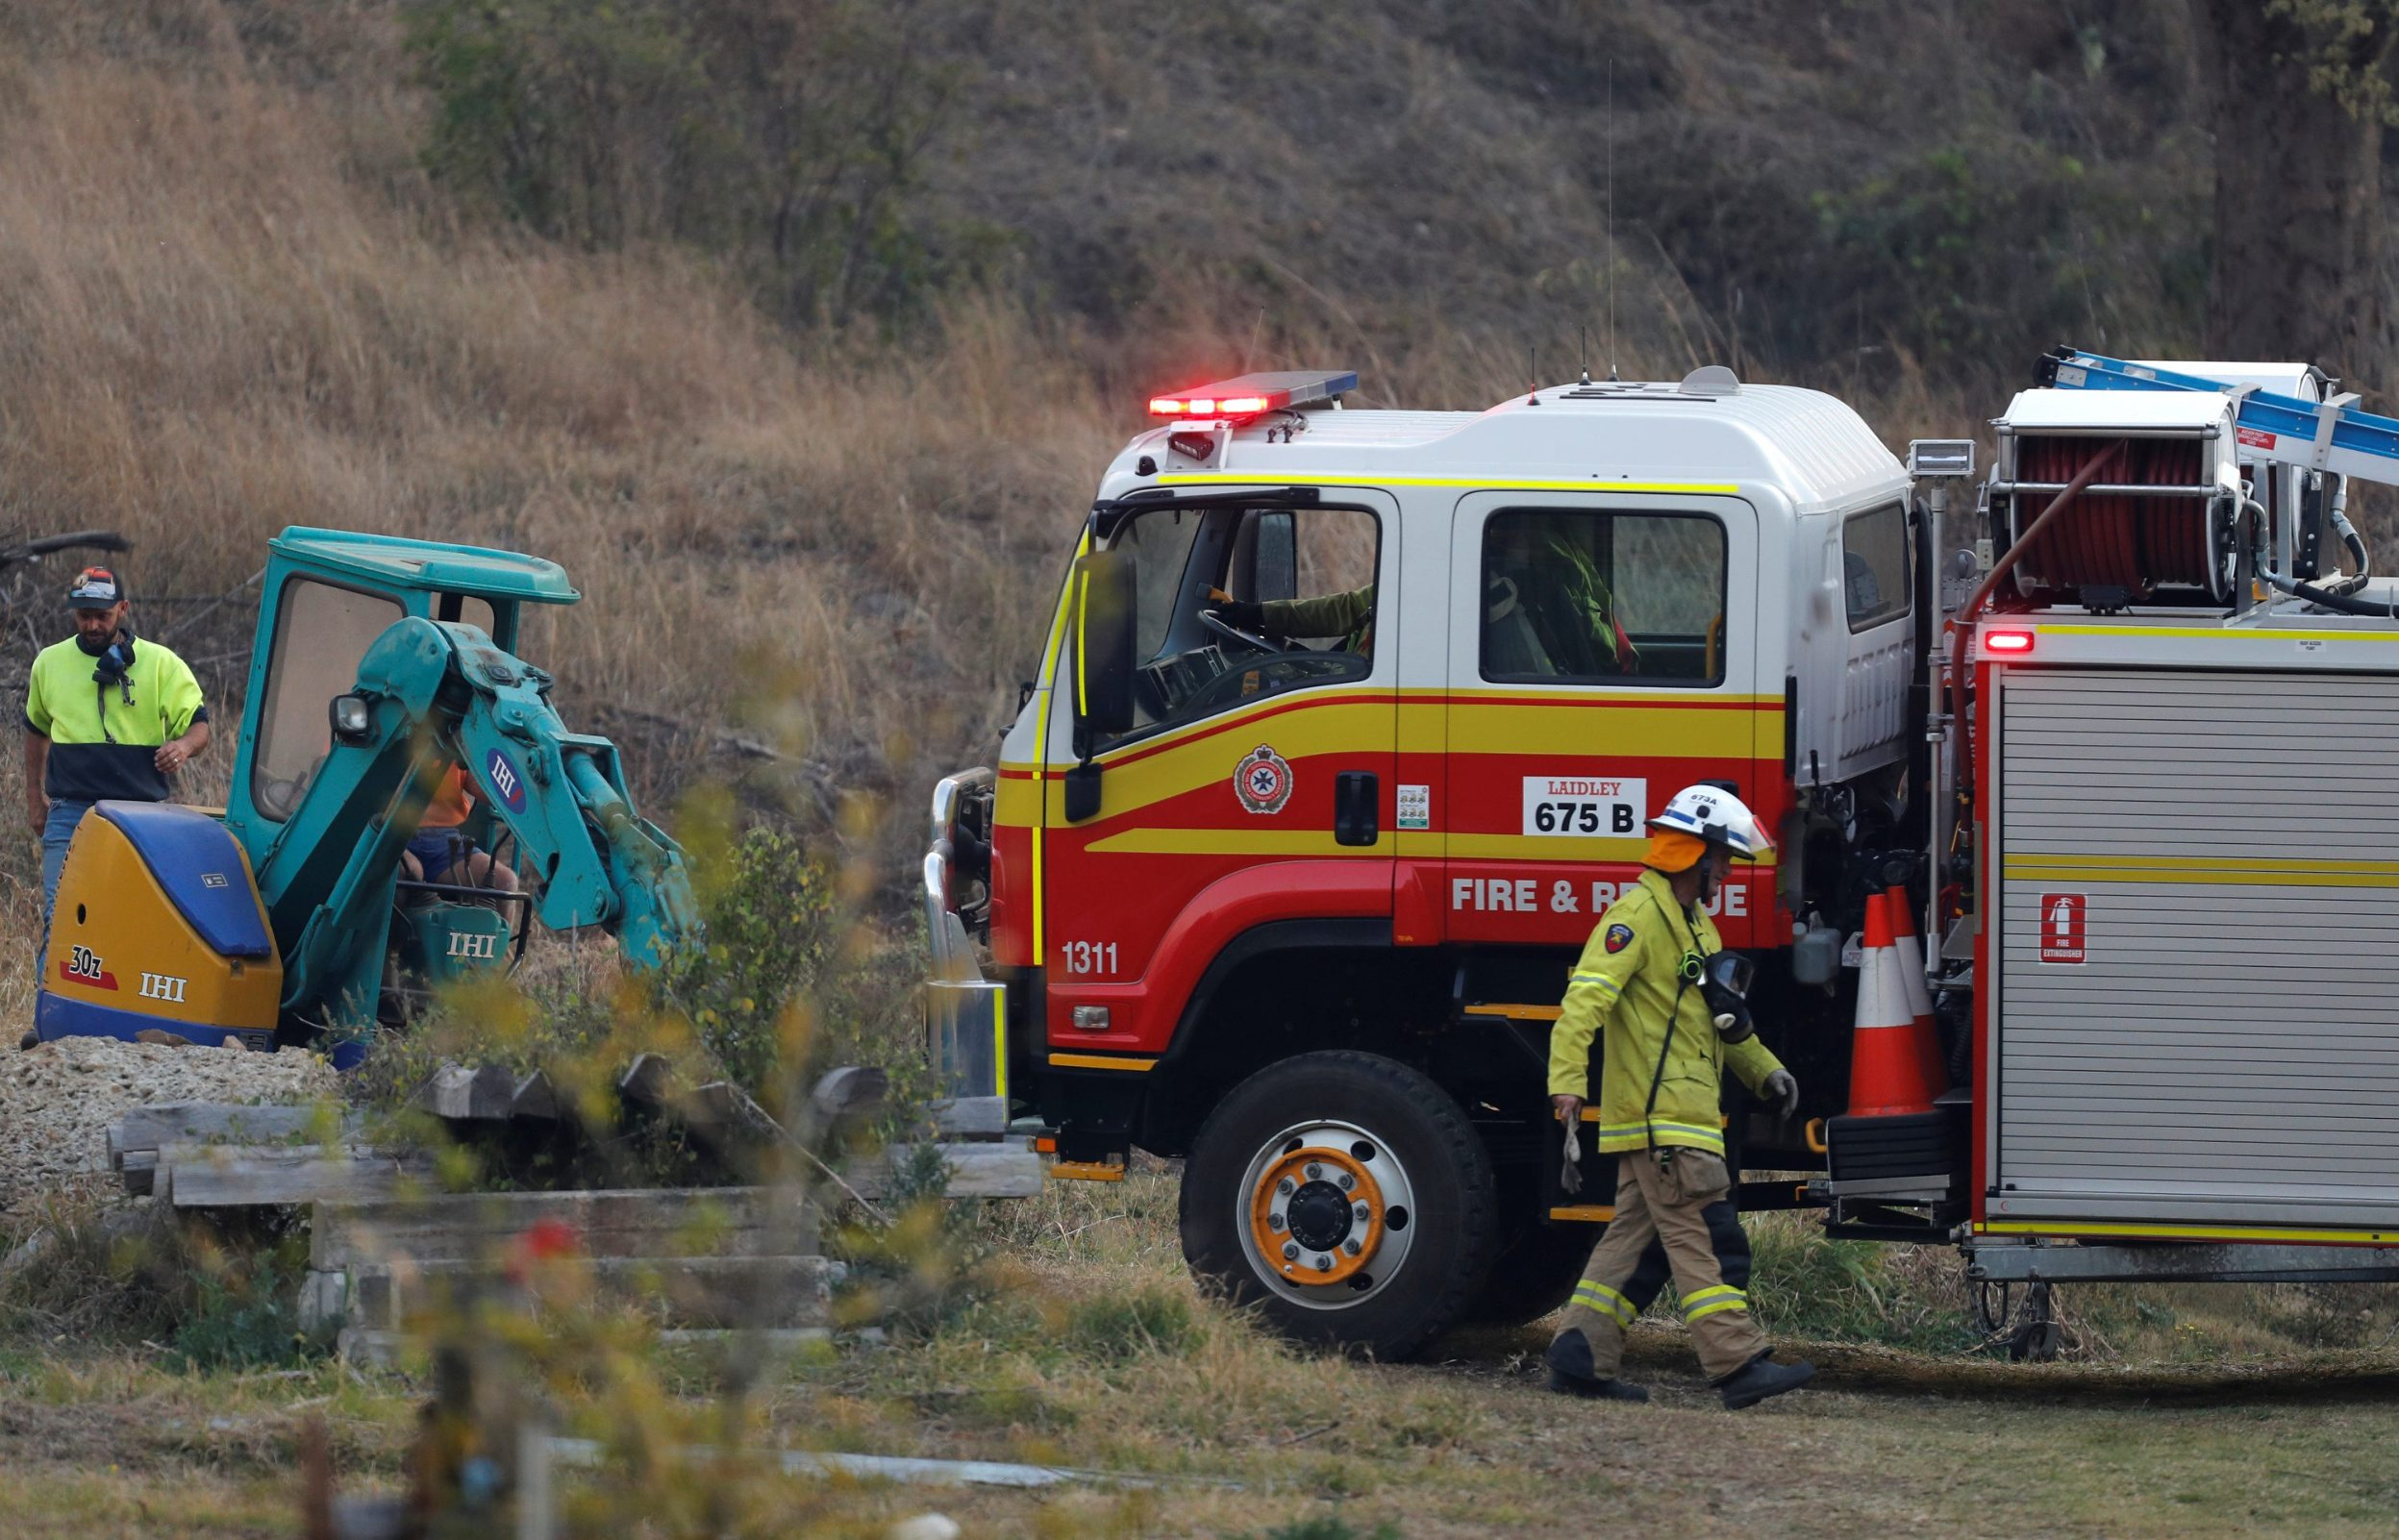 Fire and Emergency crew prepare to battle bushfire near a house in the rural town of Canungra in the Scenic Rim region of South East Queensland, Australia, September 6, 2019. Picture taken September 6, 2019.  Regi Varghese/AAP/via REUTERS    ATTENTION EDITORS - THIS IMAGE WAS PROVIDED BY A THIRD PARTY. NO RESALES. NO ARCHIVE. AUSTRALIA OUT. NEW ZEALAND OUT. NO COMMERCIAL OR EDITORIAL SALES IN NEW ZEALAND. NO COMMERCIAL OR EDITORIAL SALES IN AUSTRALIA.